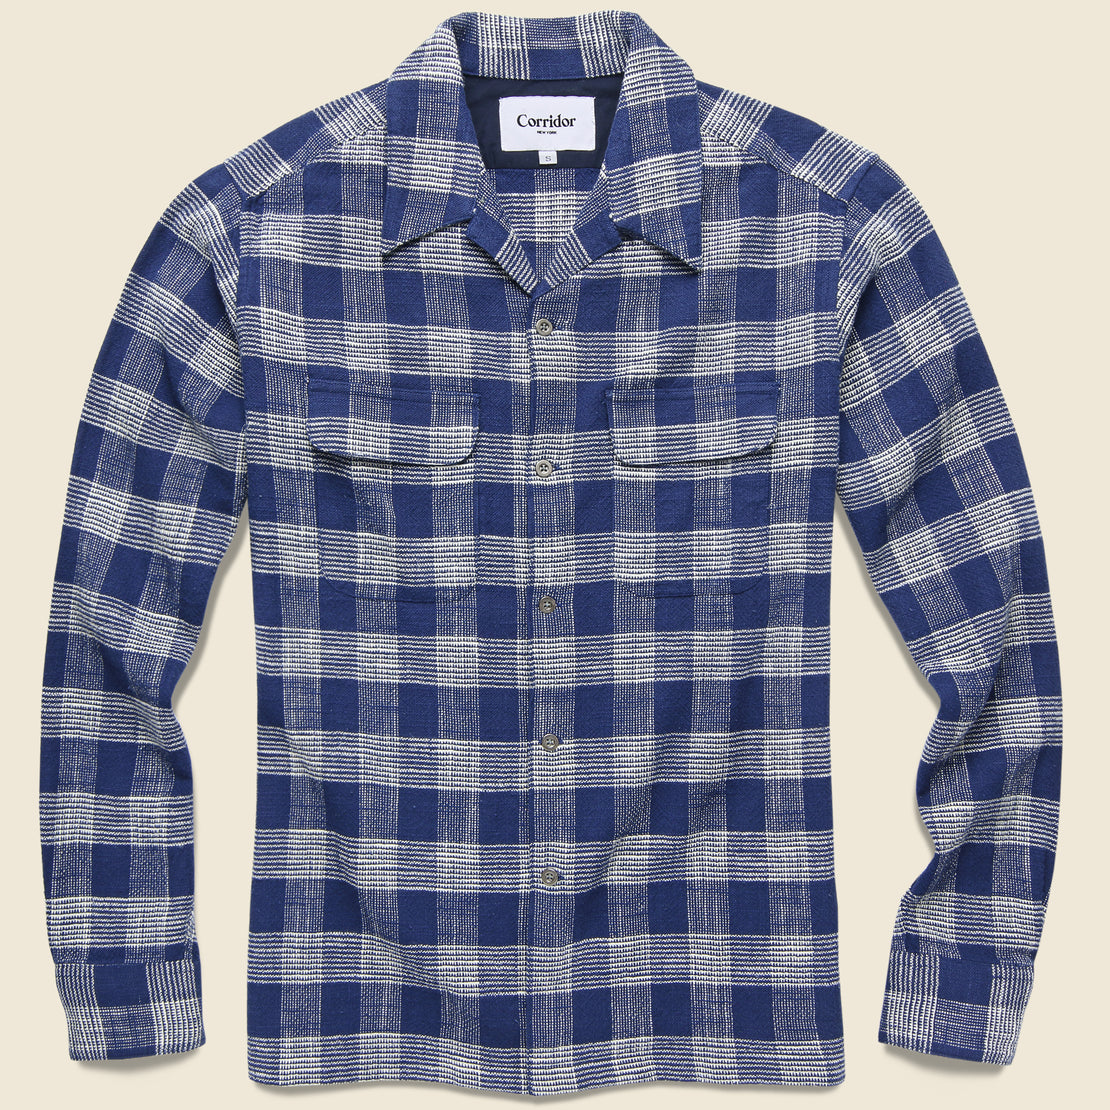 Corridor Triple Check Workshirt - Indigo